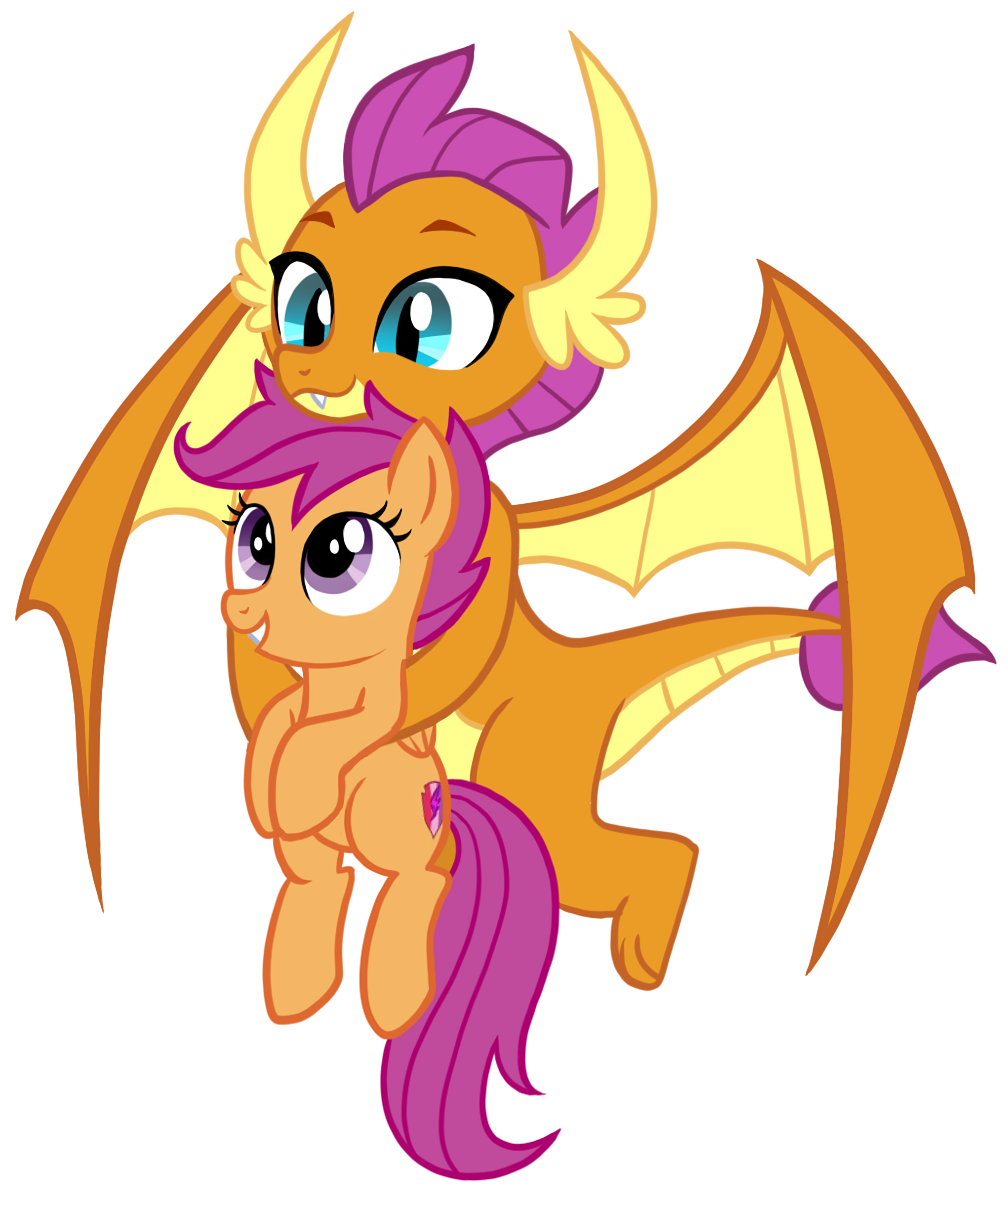 Orange Purple My Little Pony Friendship Is Magic Know Your Meme One third of the greatest trio of fillies ever! little pony friendship is magic